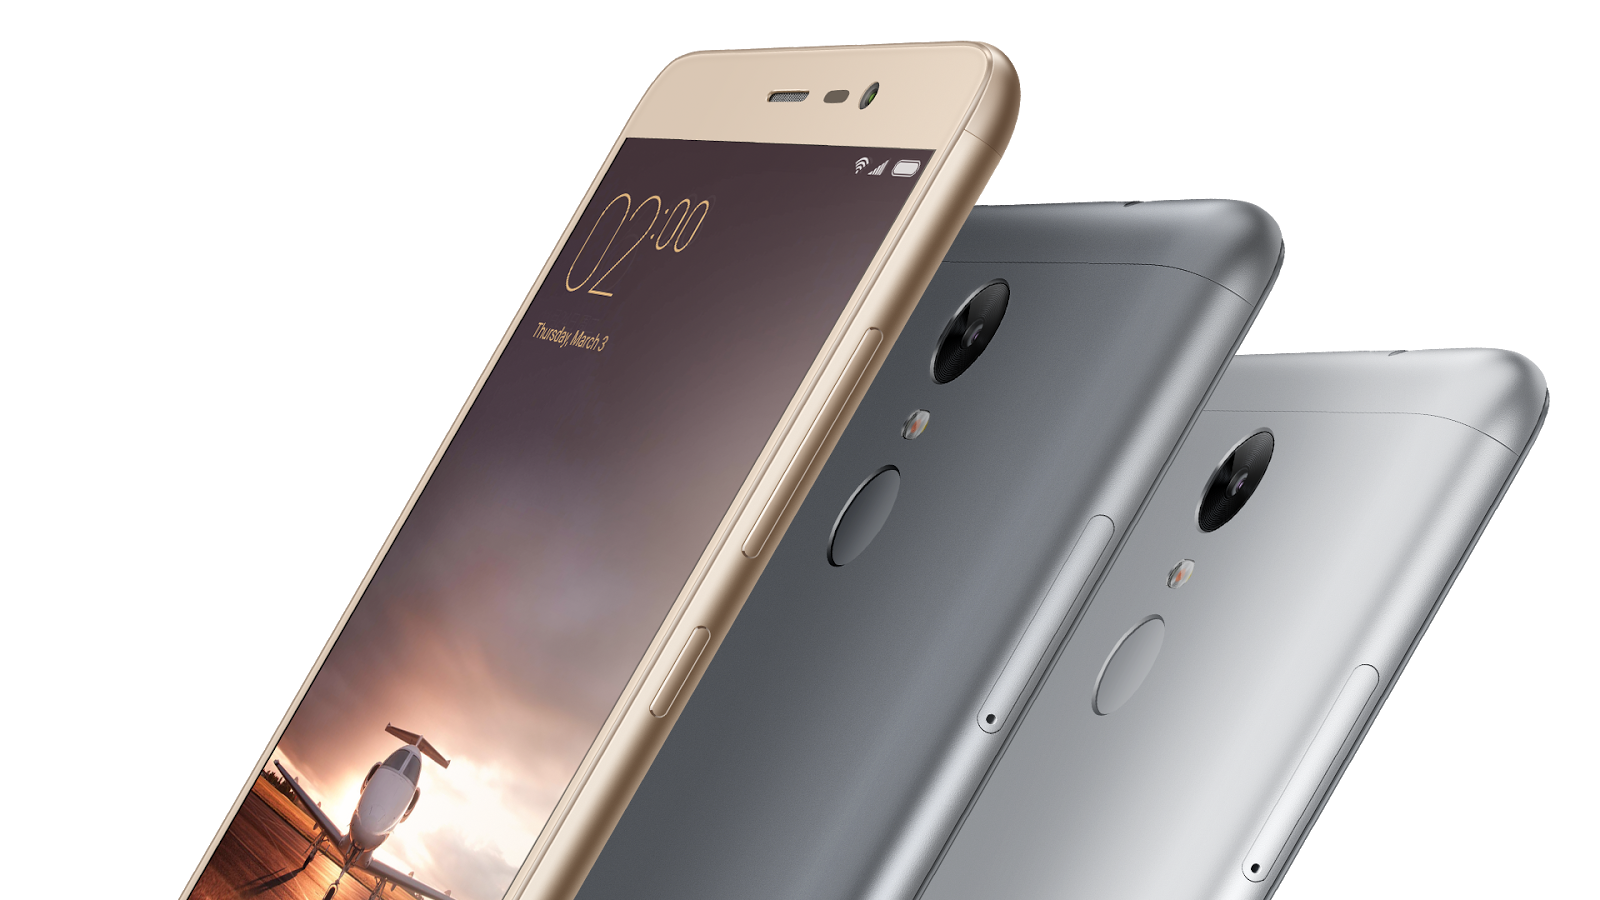 Xiaomi launches Redmi Note 3 in India for INR 9,999 - TECHPHLIE